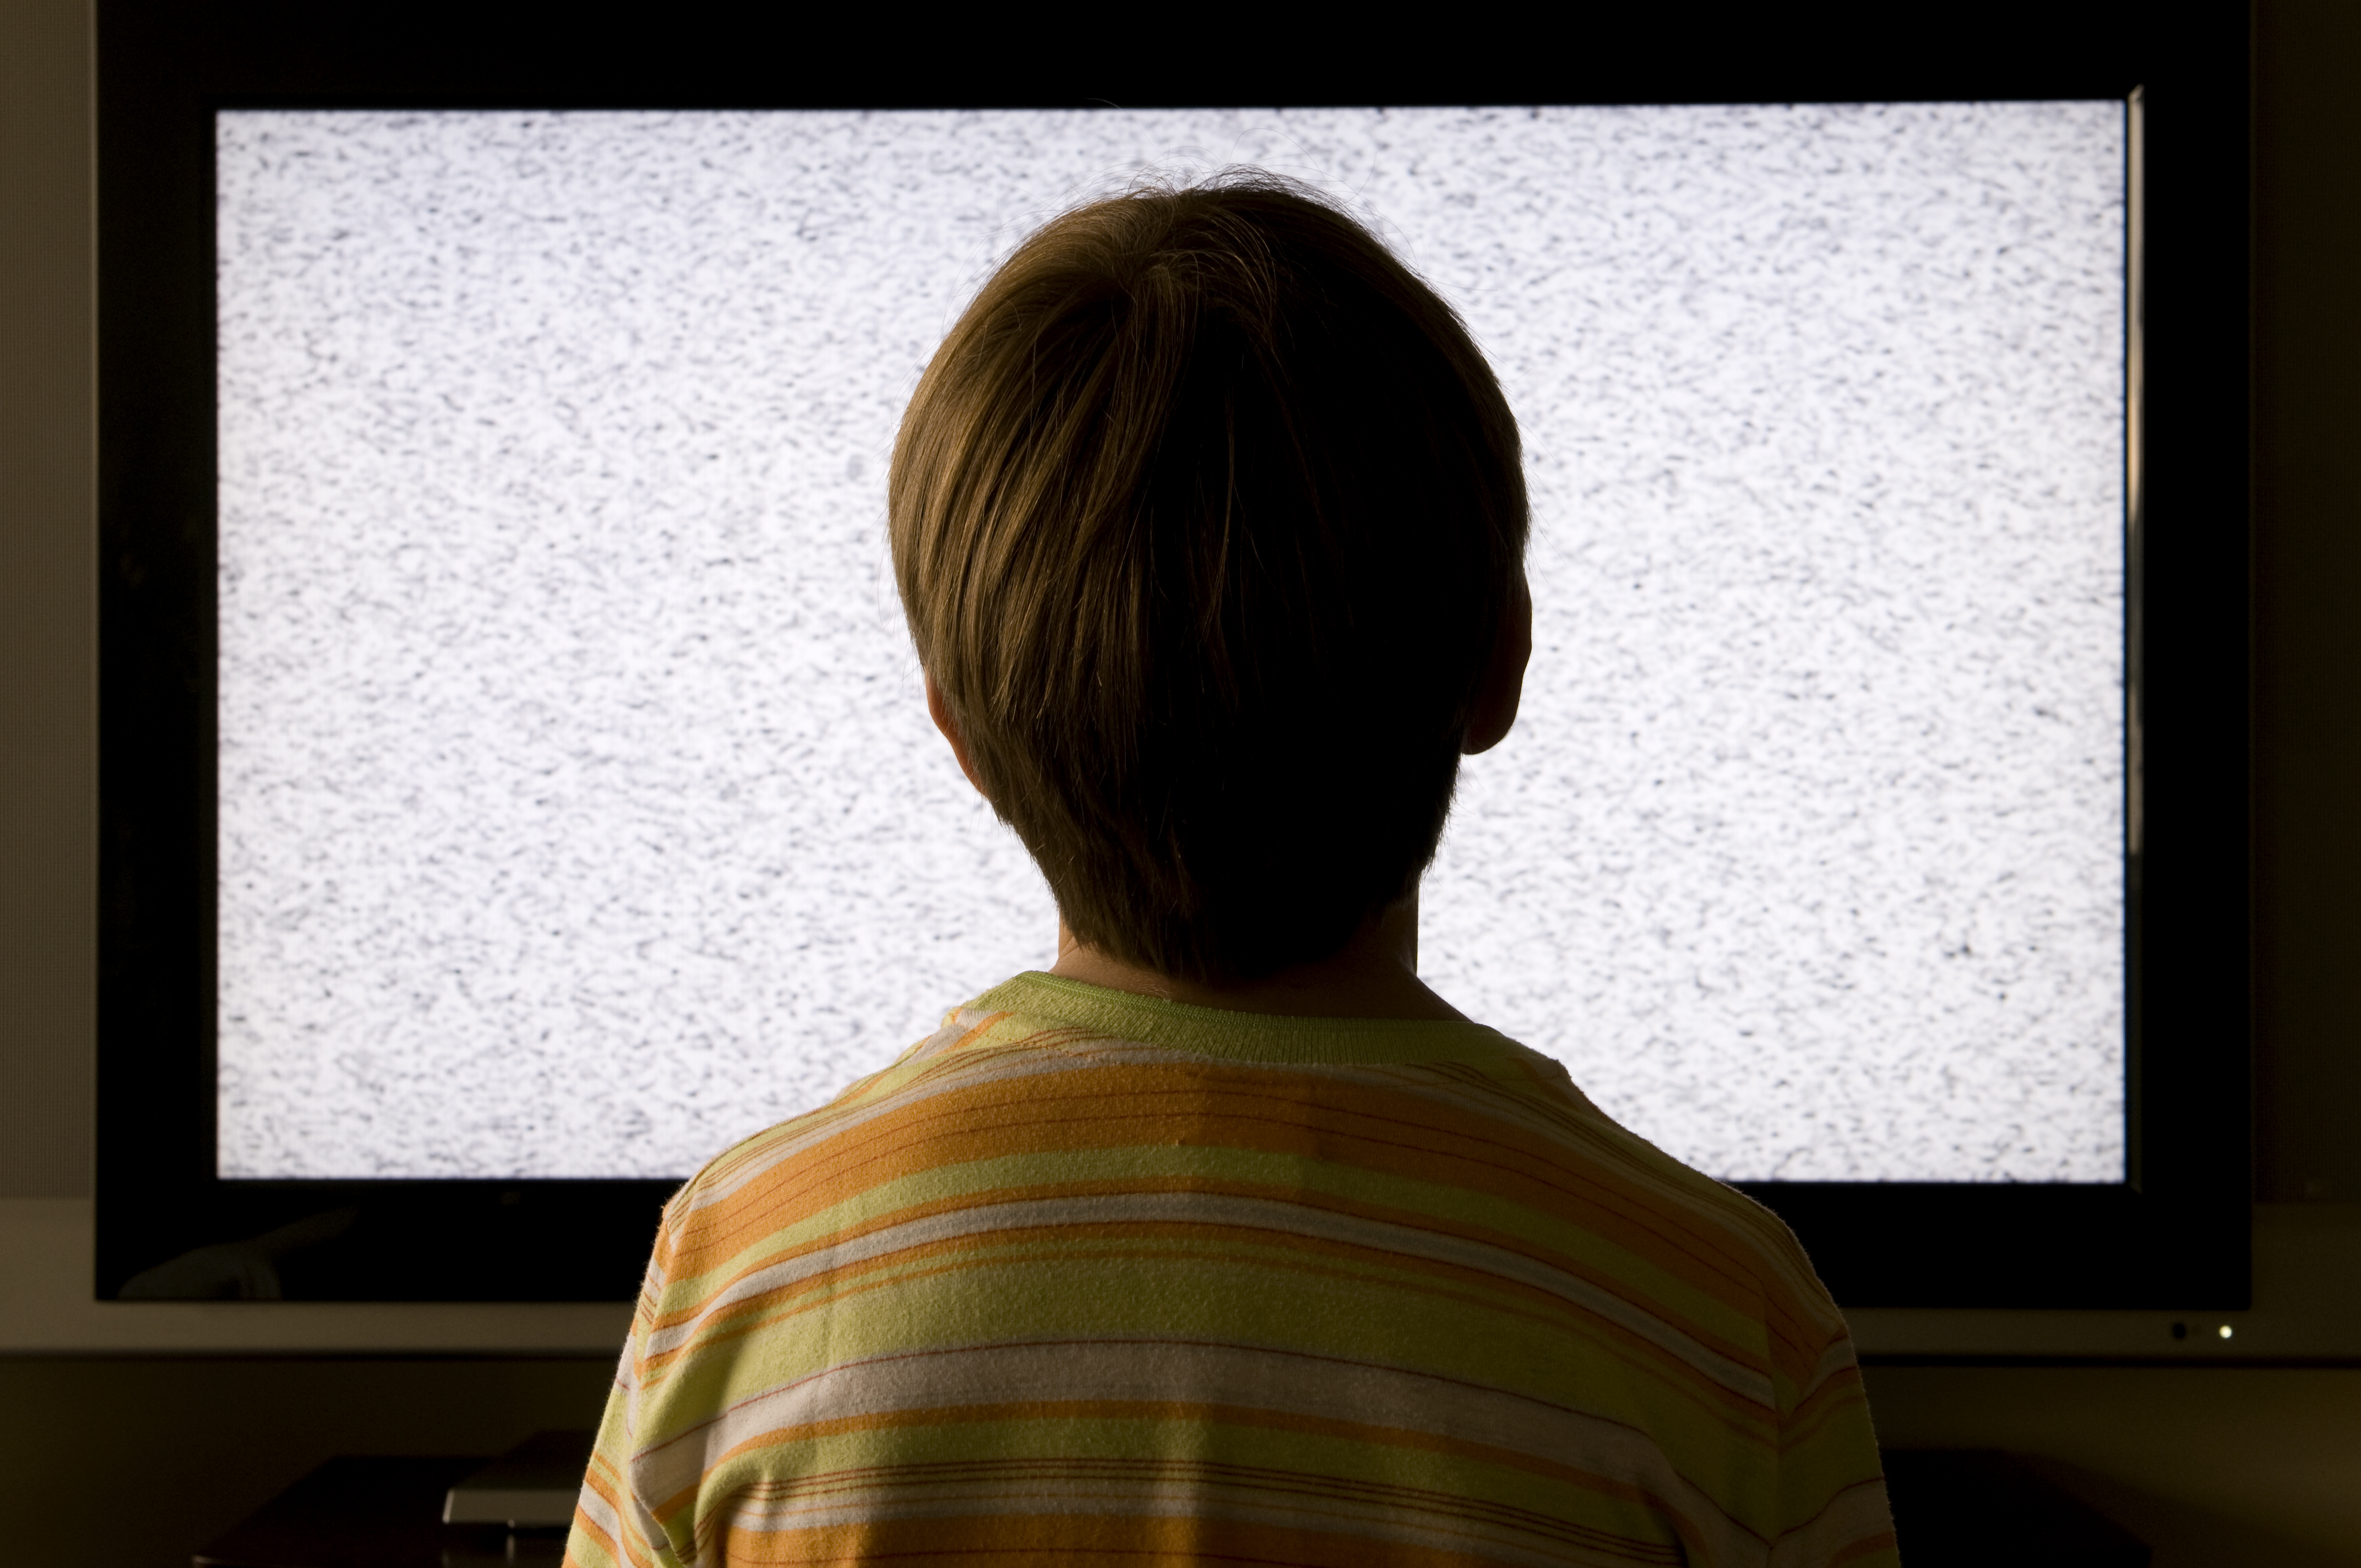 Boy in front of a broken TV playing static